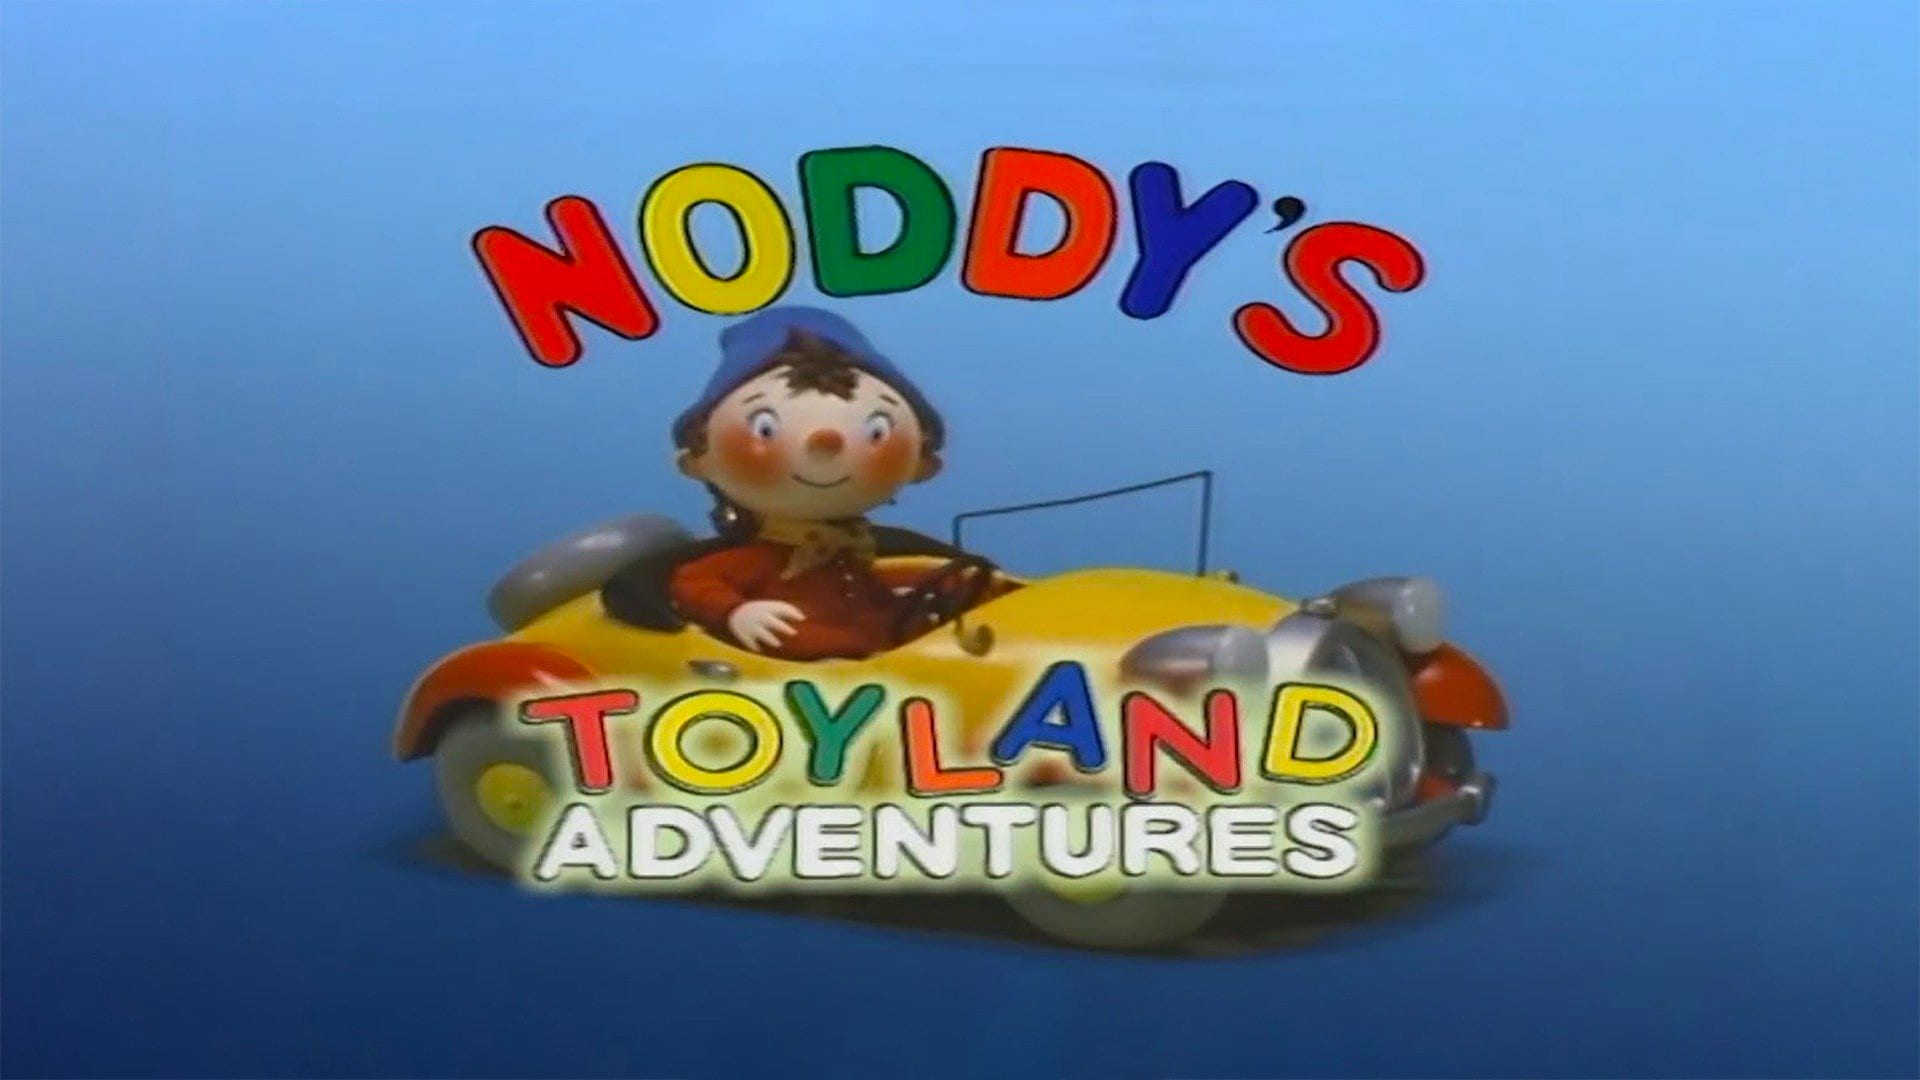 Noddy and the Golden Tree